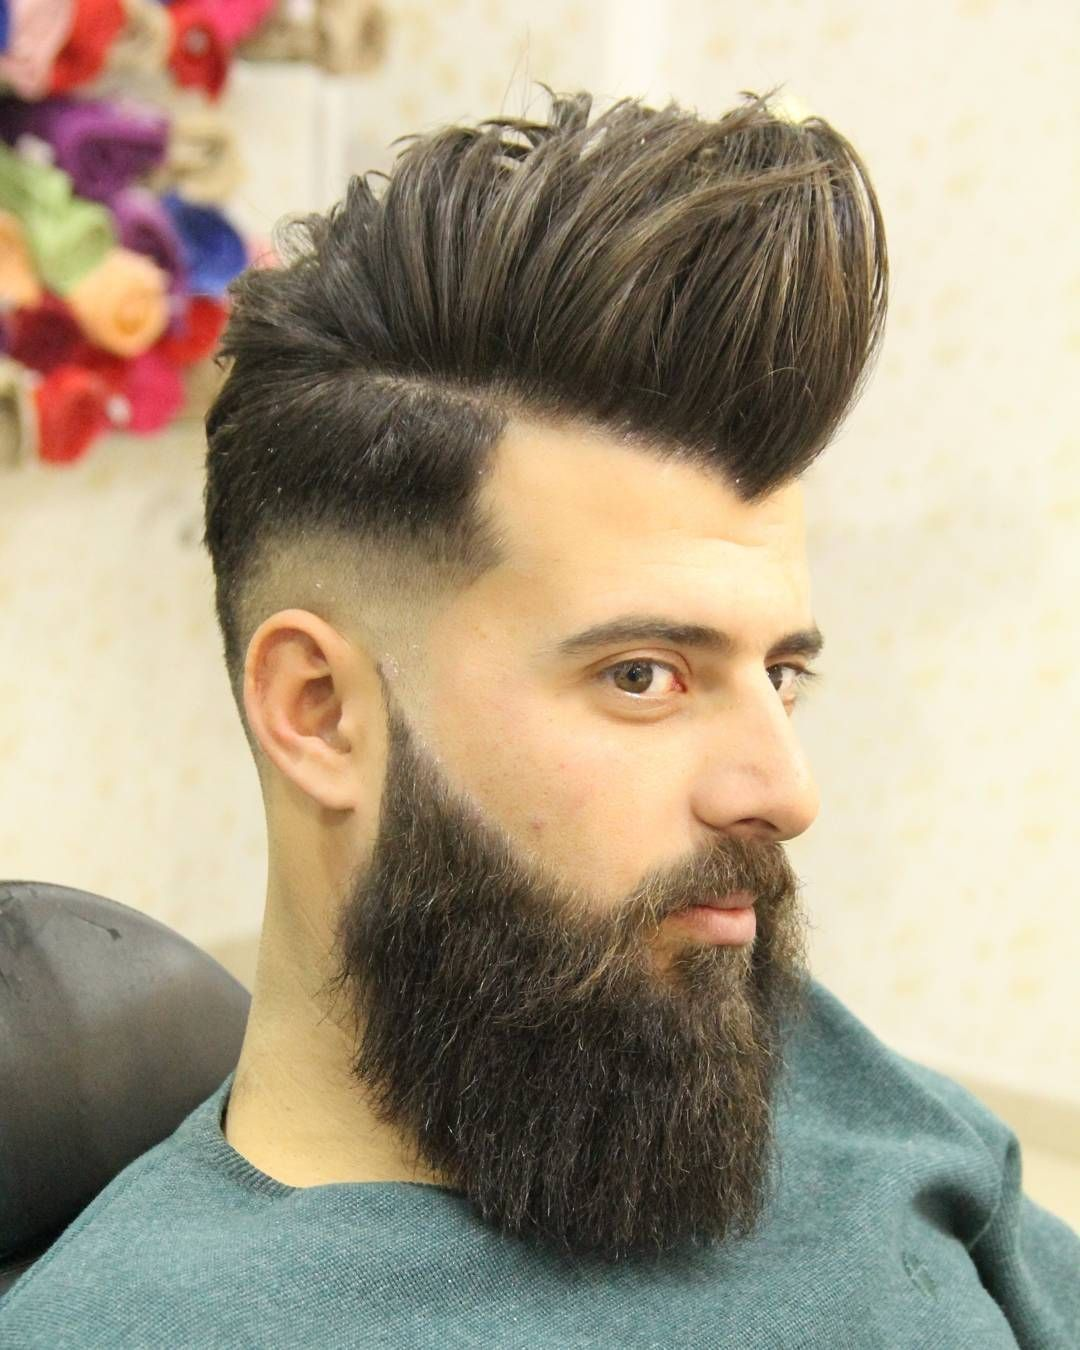 Medium haircuts for men with thick hair  elegant hairstyles for medium hair men  hairstyles  pinterest